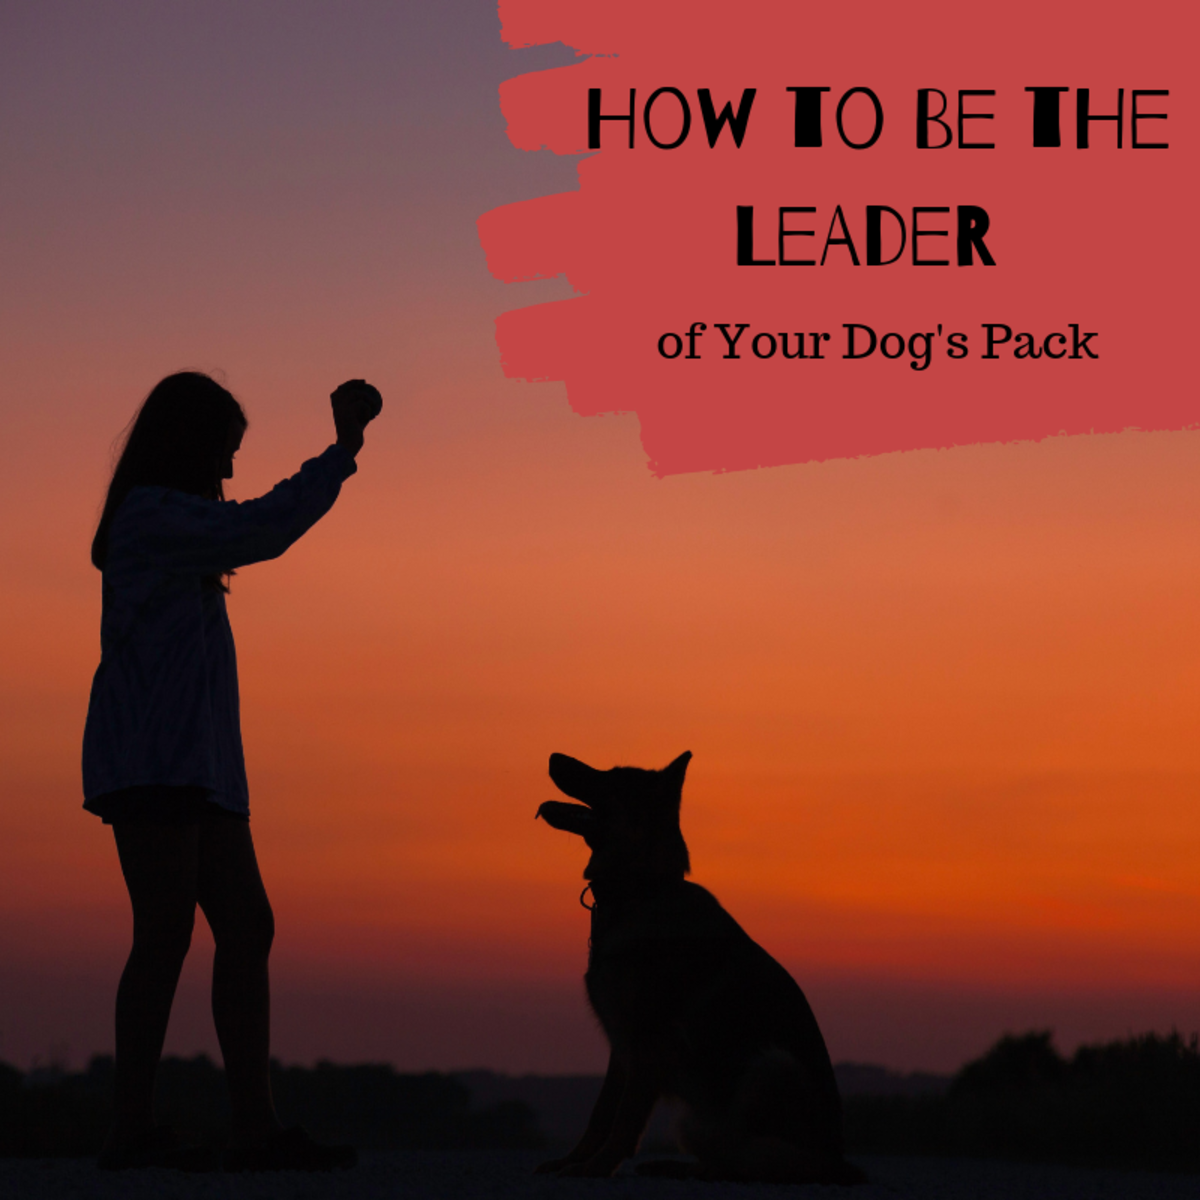 Your dog will thrive with leadership. Help him feel more secure by establishing yourself as the alpha.